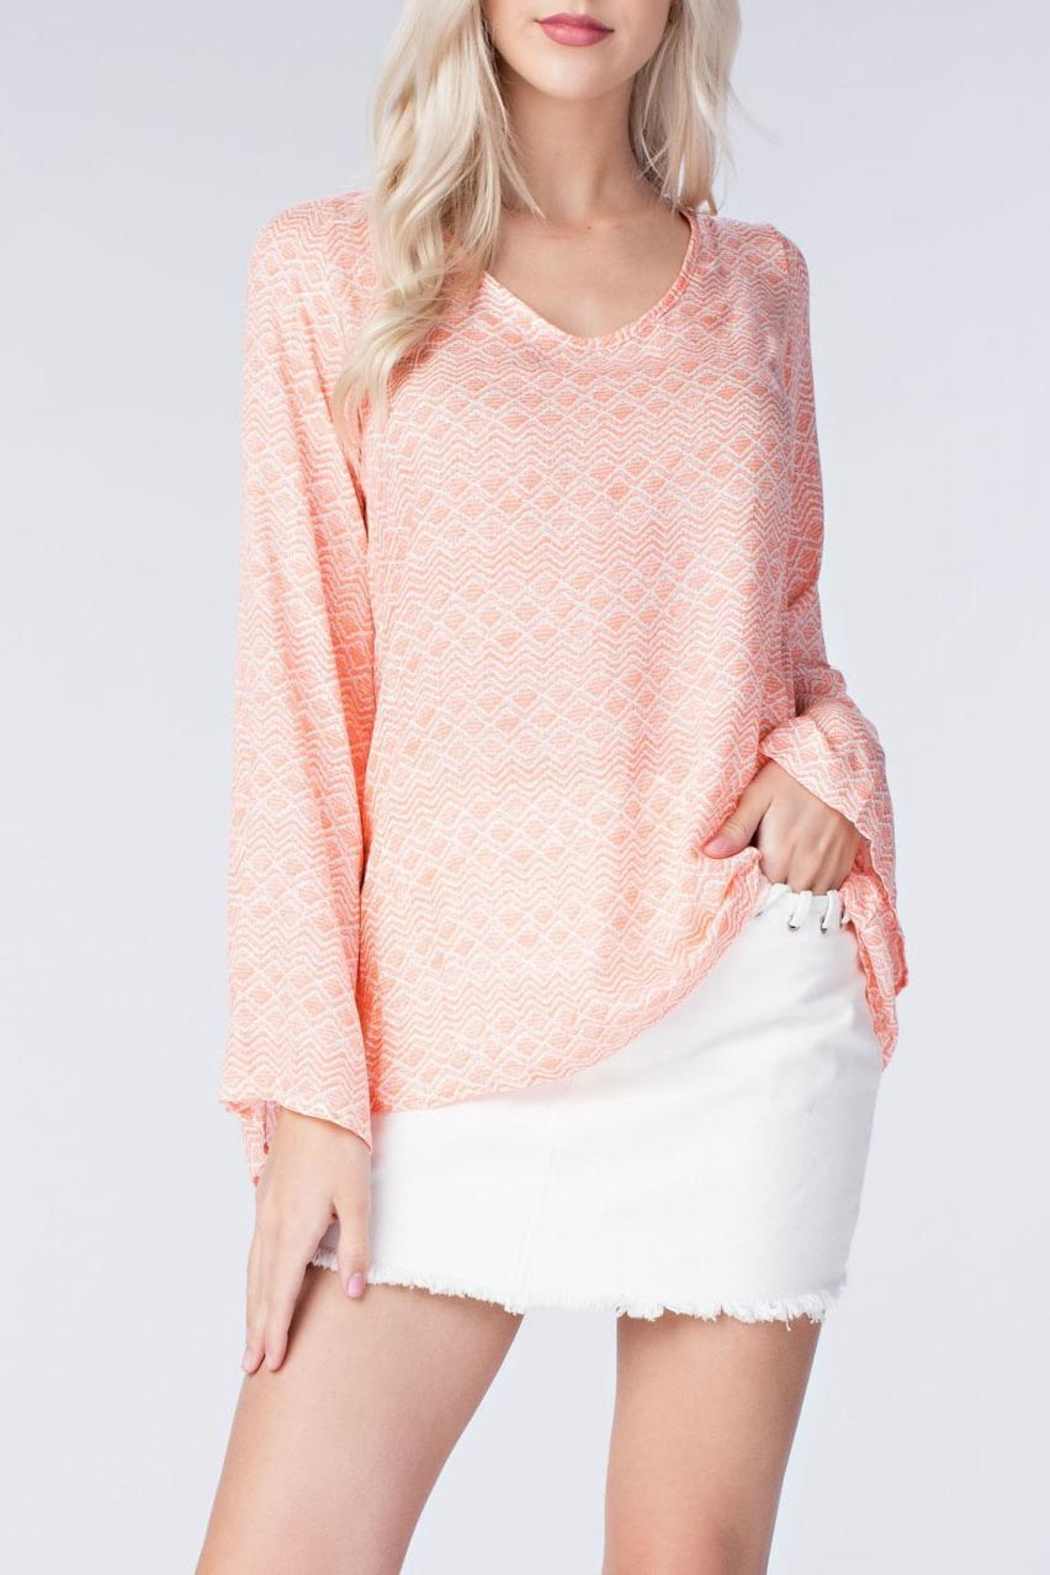 honey belle Coral Breeze Top - Main Image